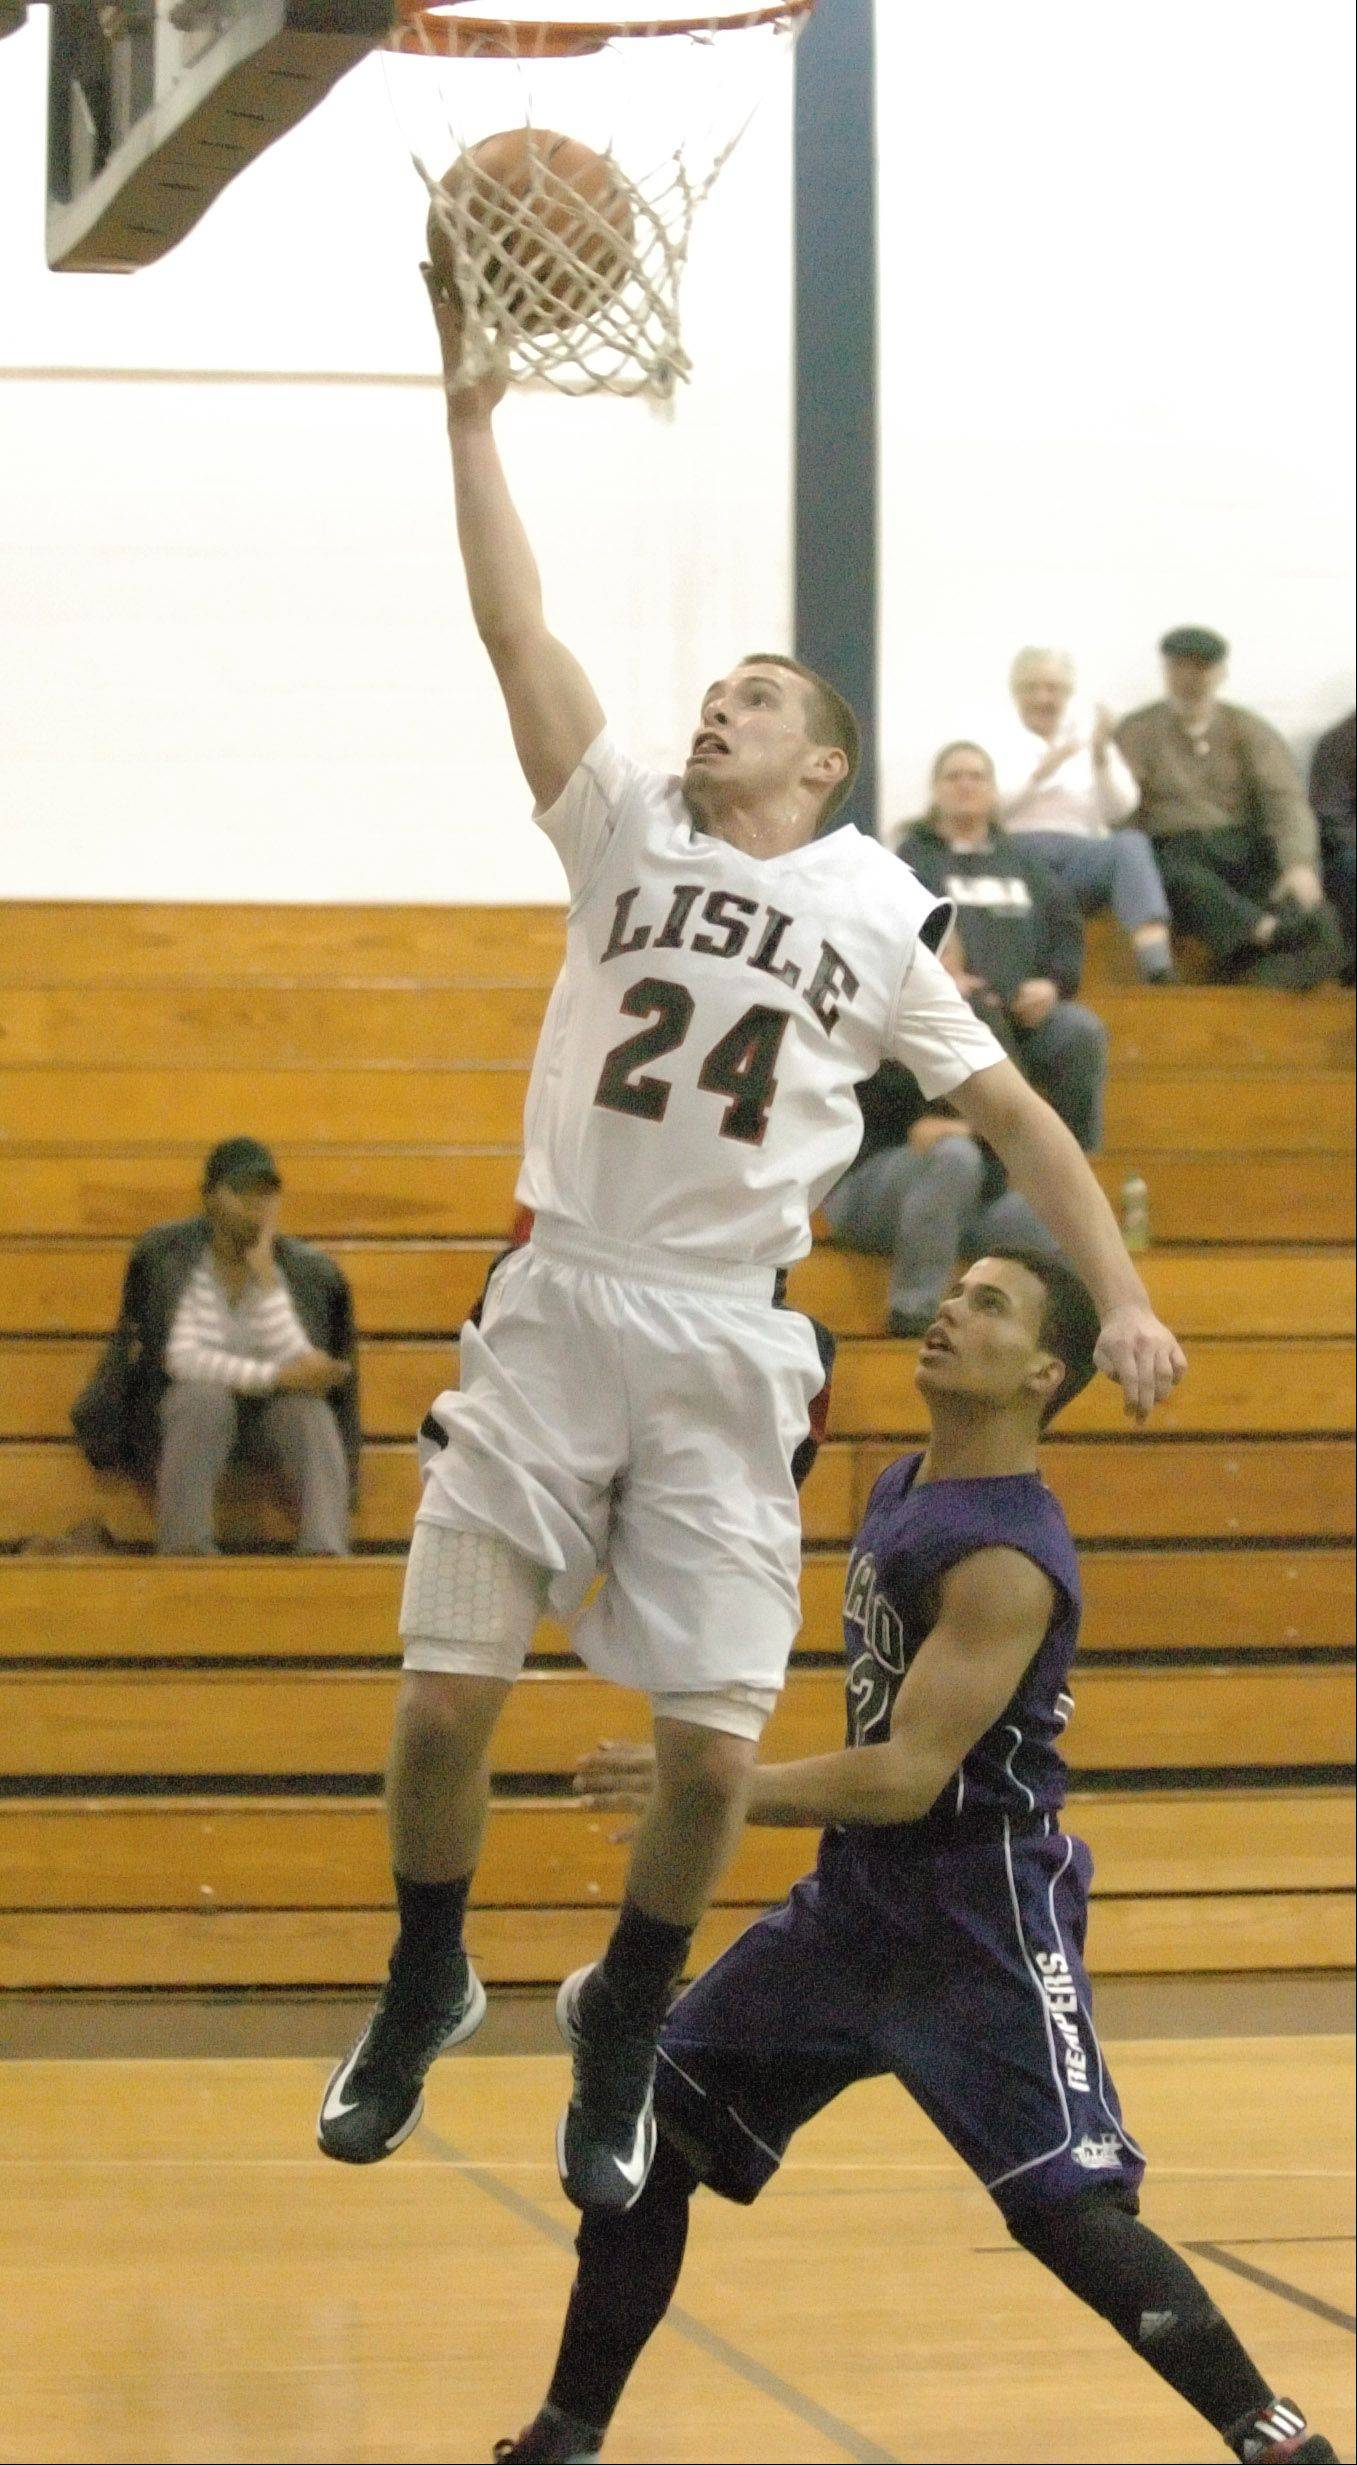 Cody Monson of Lisle brings one to the net during the Plano at Lisle boys basketball game Tuesday.